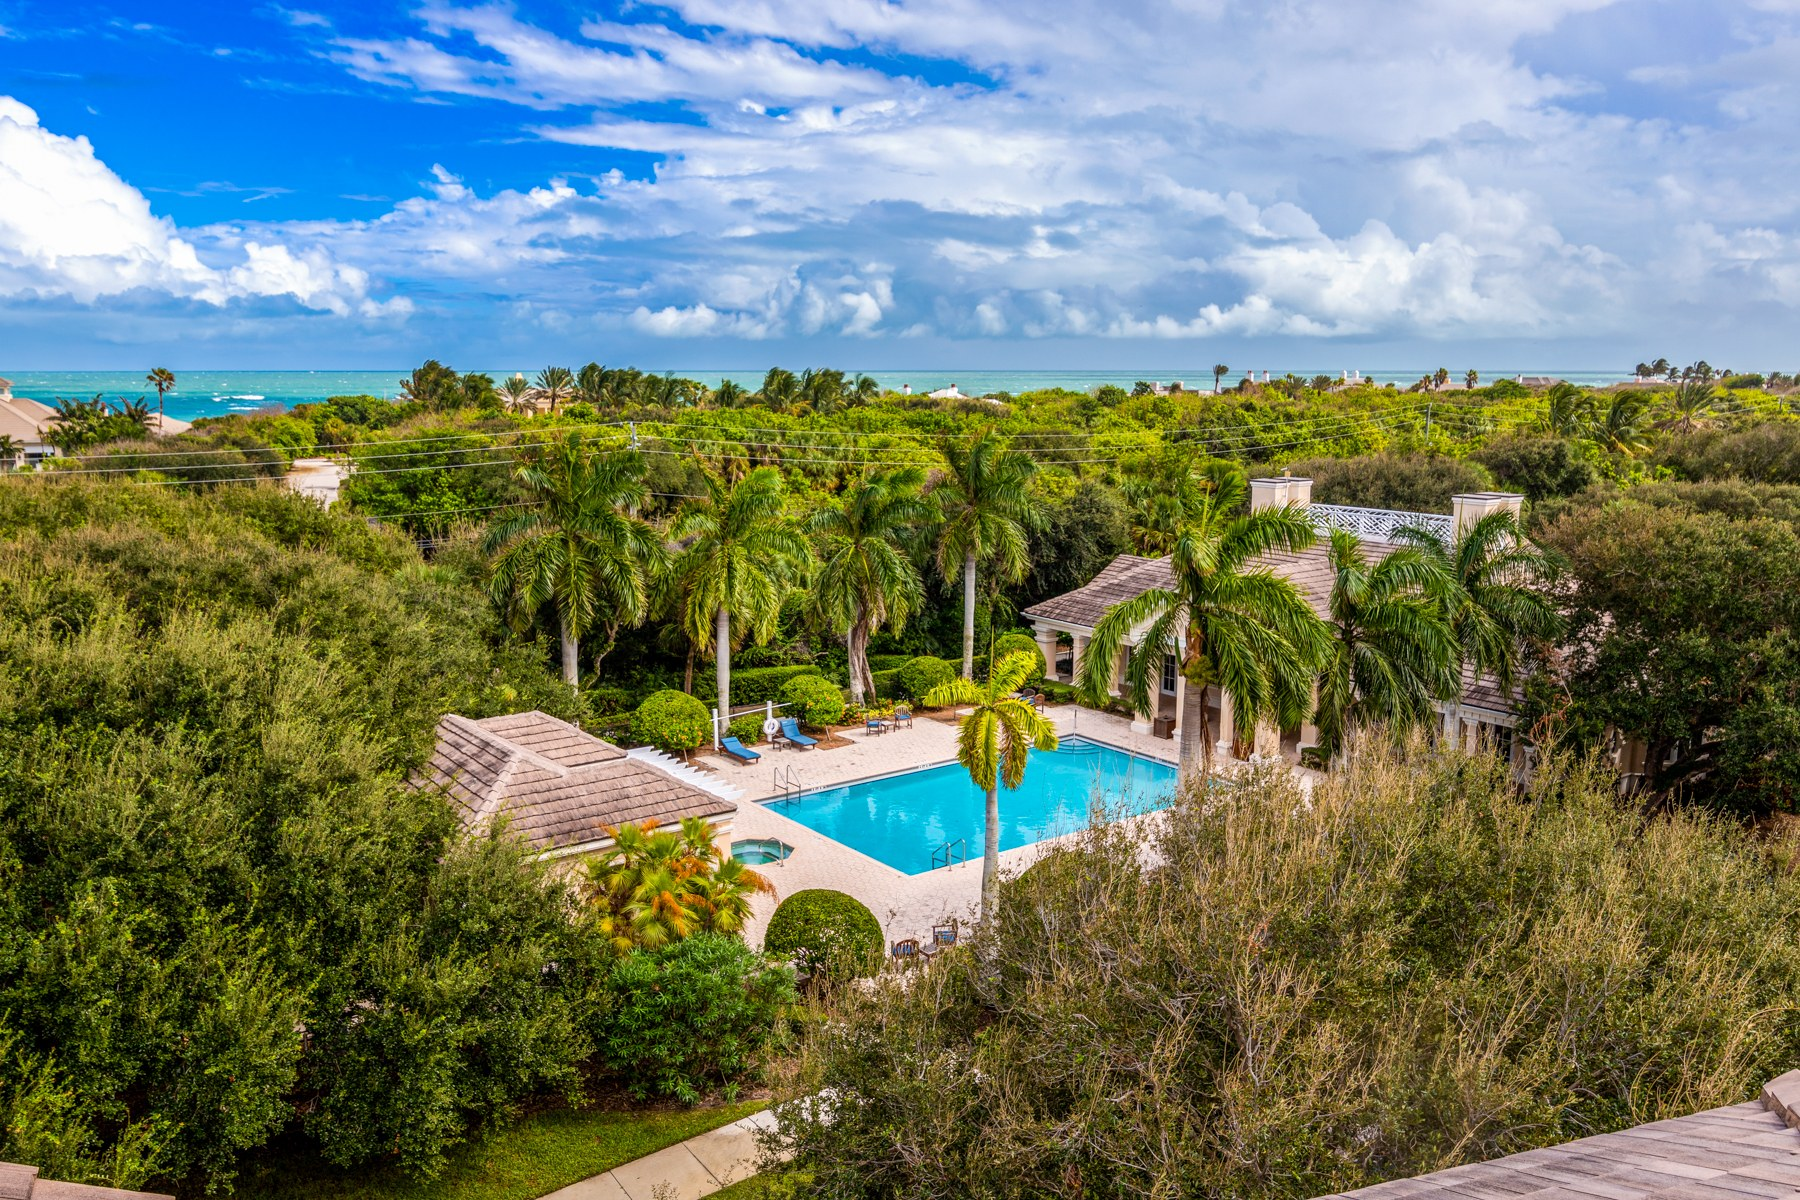 Property for Sale at 900 River Club Drive & Highway A1 A, Vero Beach, FL 900 River Club Drive & Highway A1 A Vero Beach, Florida 32963 United States